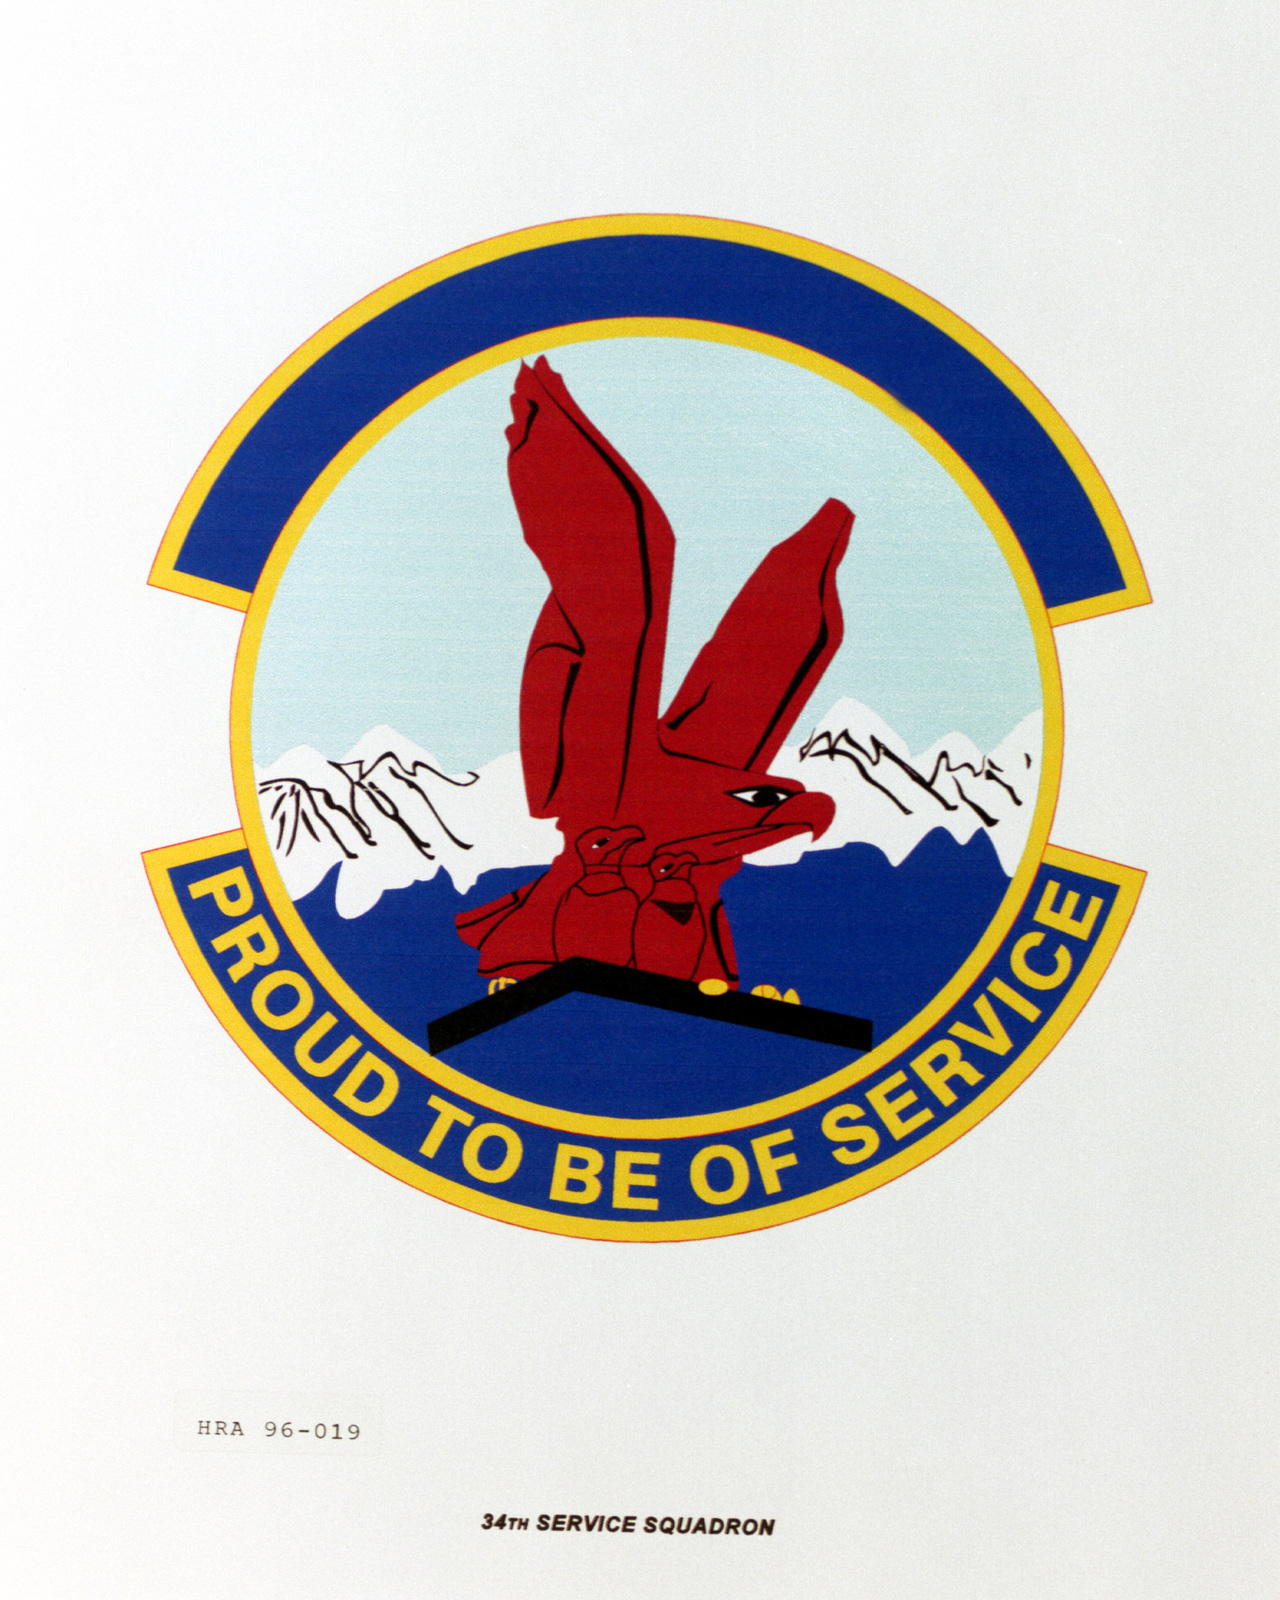 Approved insignia for the 34th Services Squadron Exact Date Shot Unknown